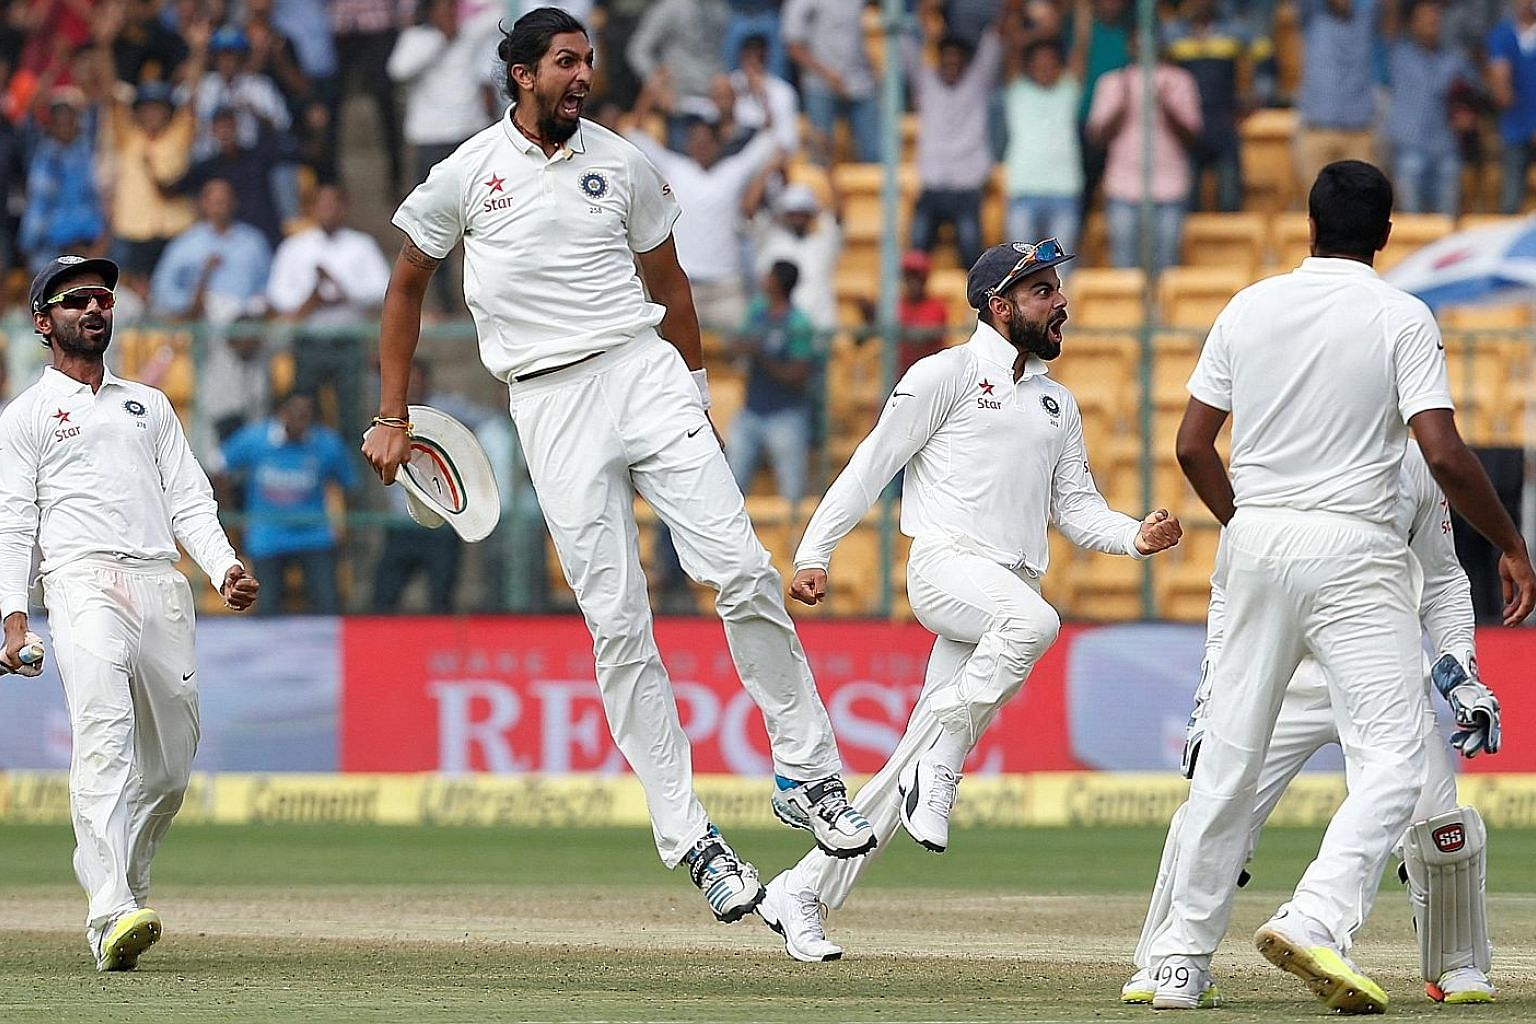 India captain Virat Kohli (third from left) celebrates with team-mates after their 75-run victory in the second Test against Australia in Bengaluru. The four-match series between the world's top two sides is level at 1-1.